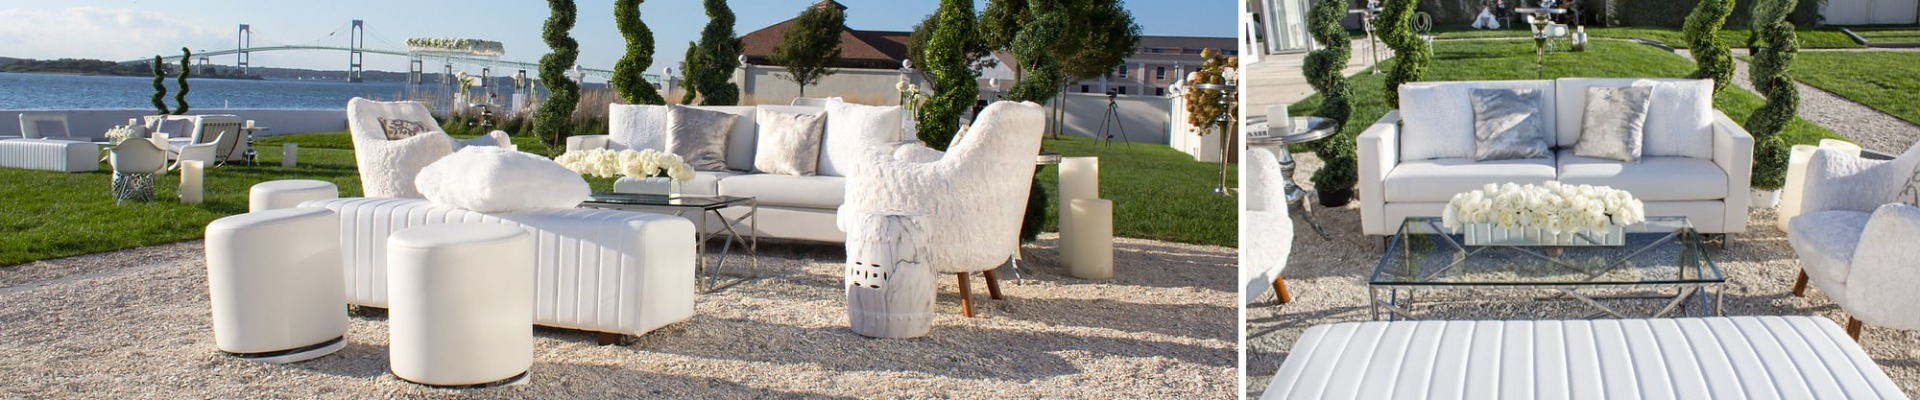 wedding reception with white furniture